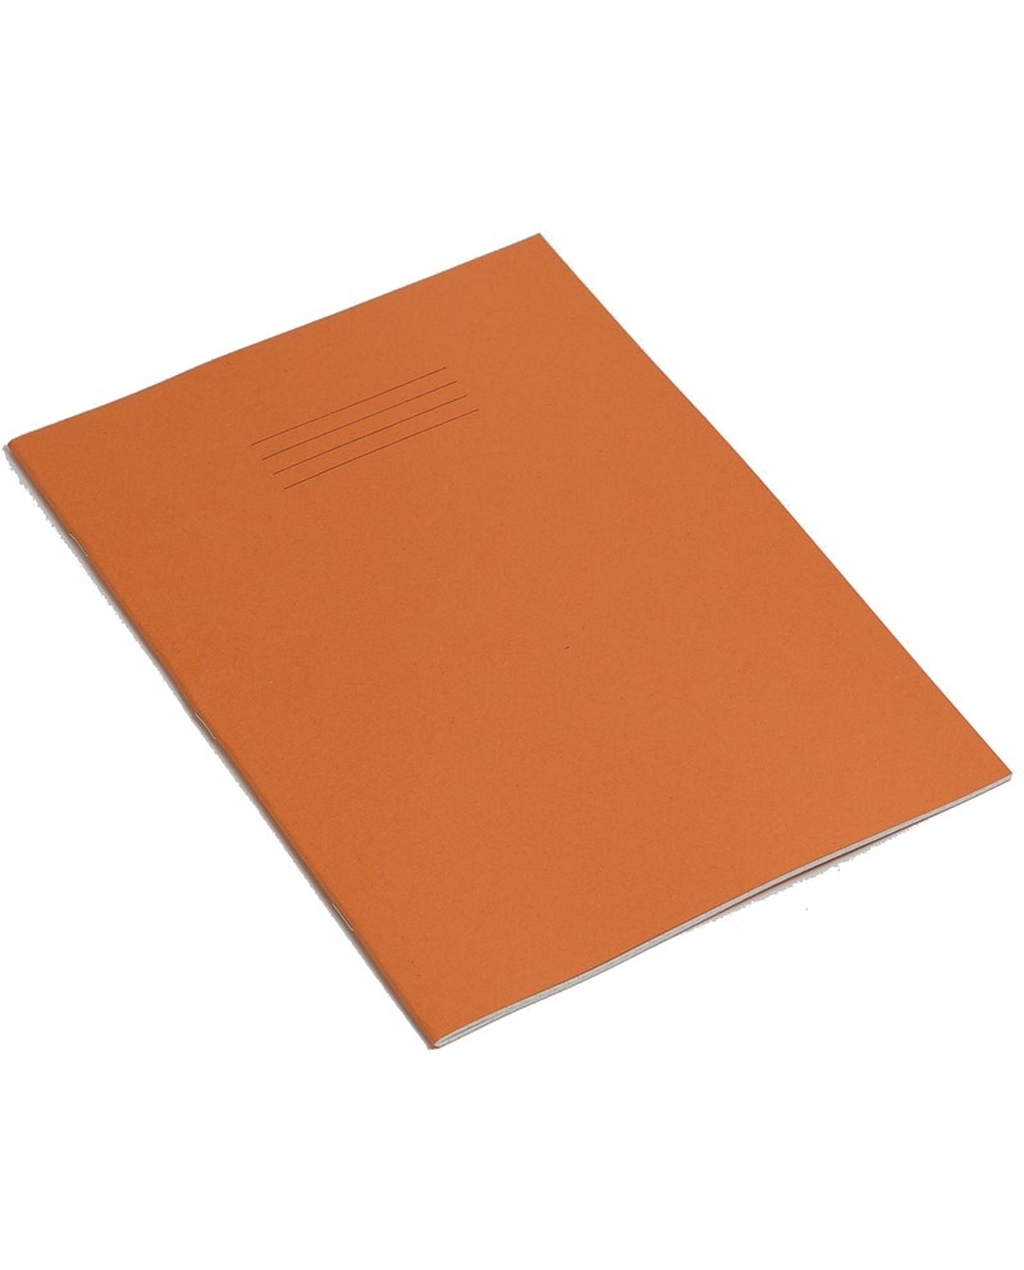 Exercise Book 8 x 6.5 (203 x 165mm) Orange Cover 8mm Ruled & Margin 48 Pages